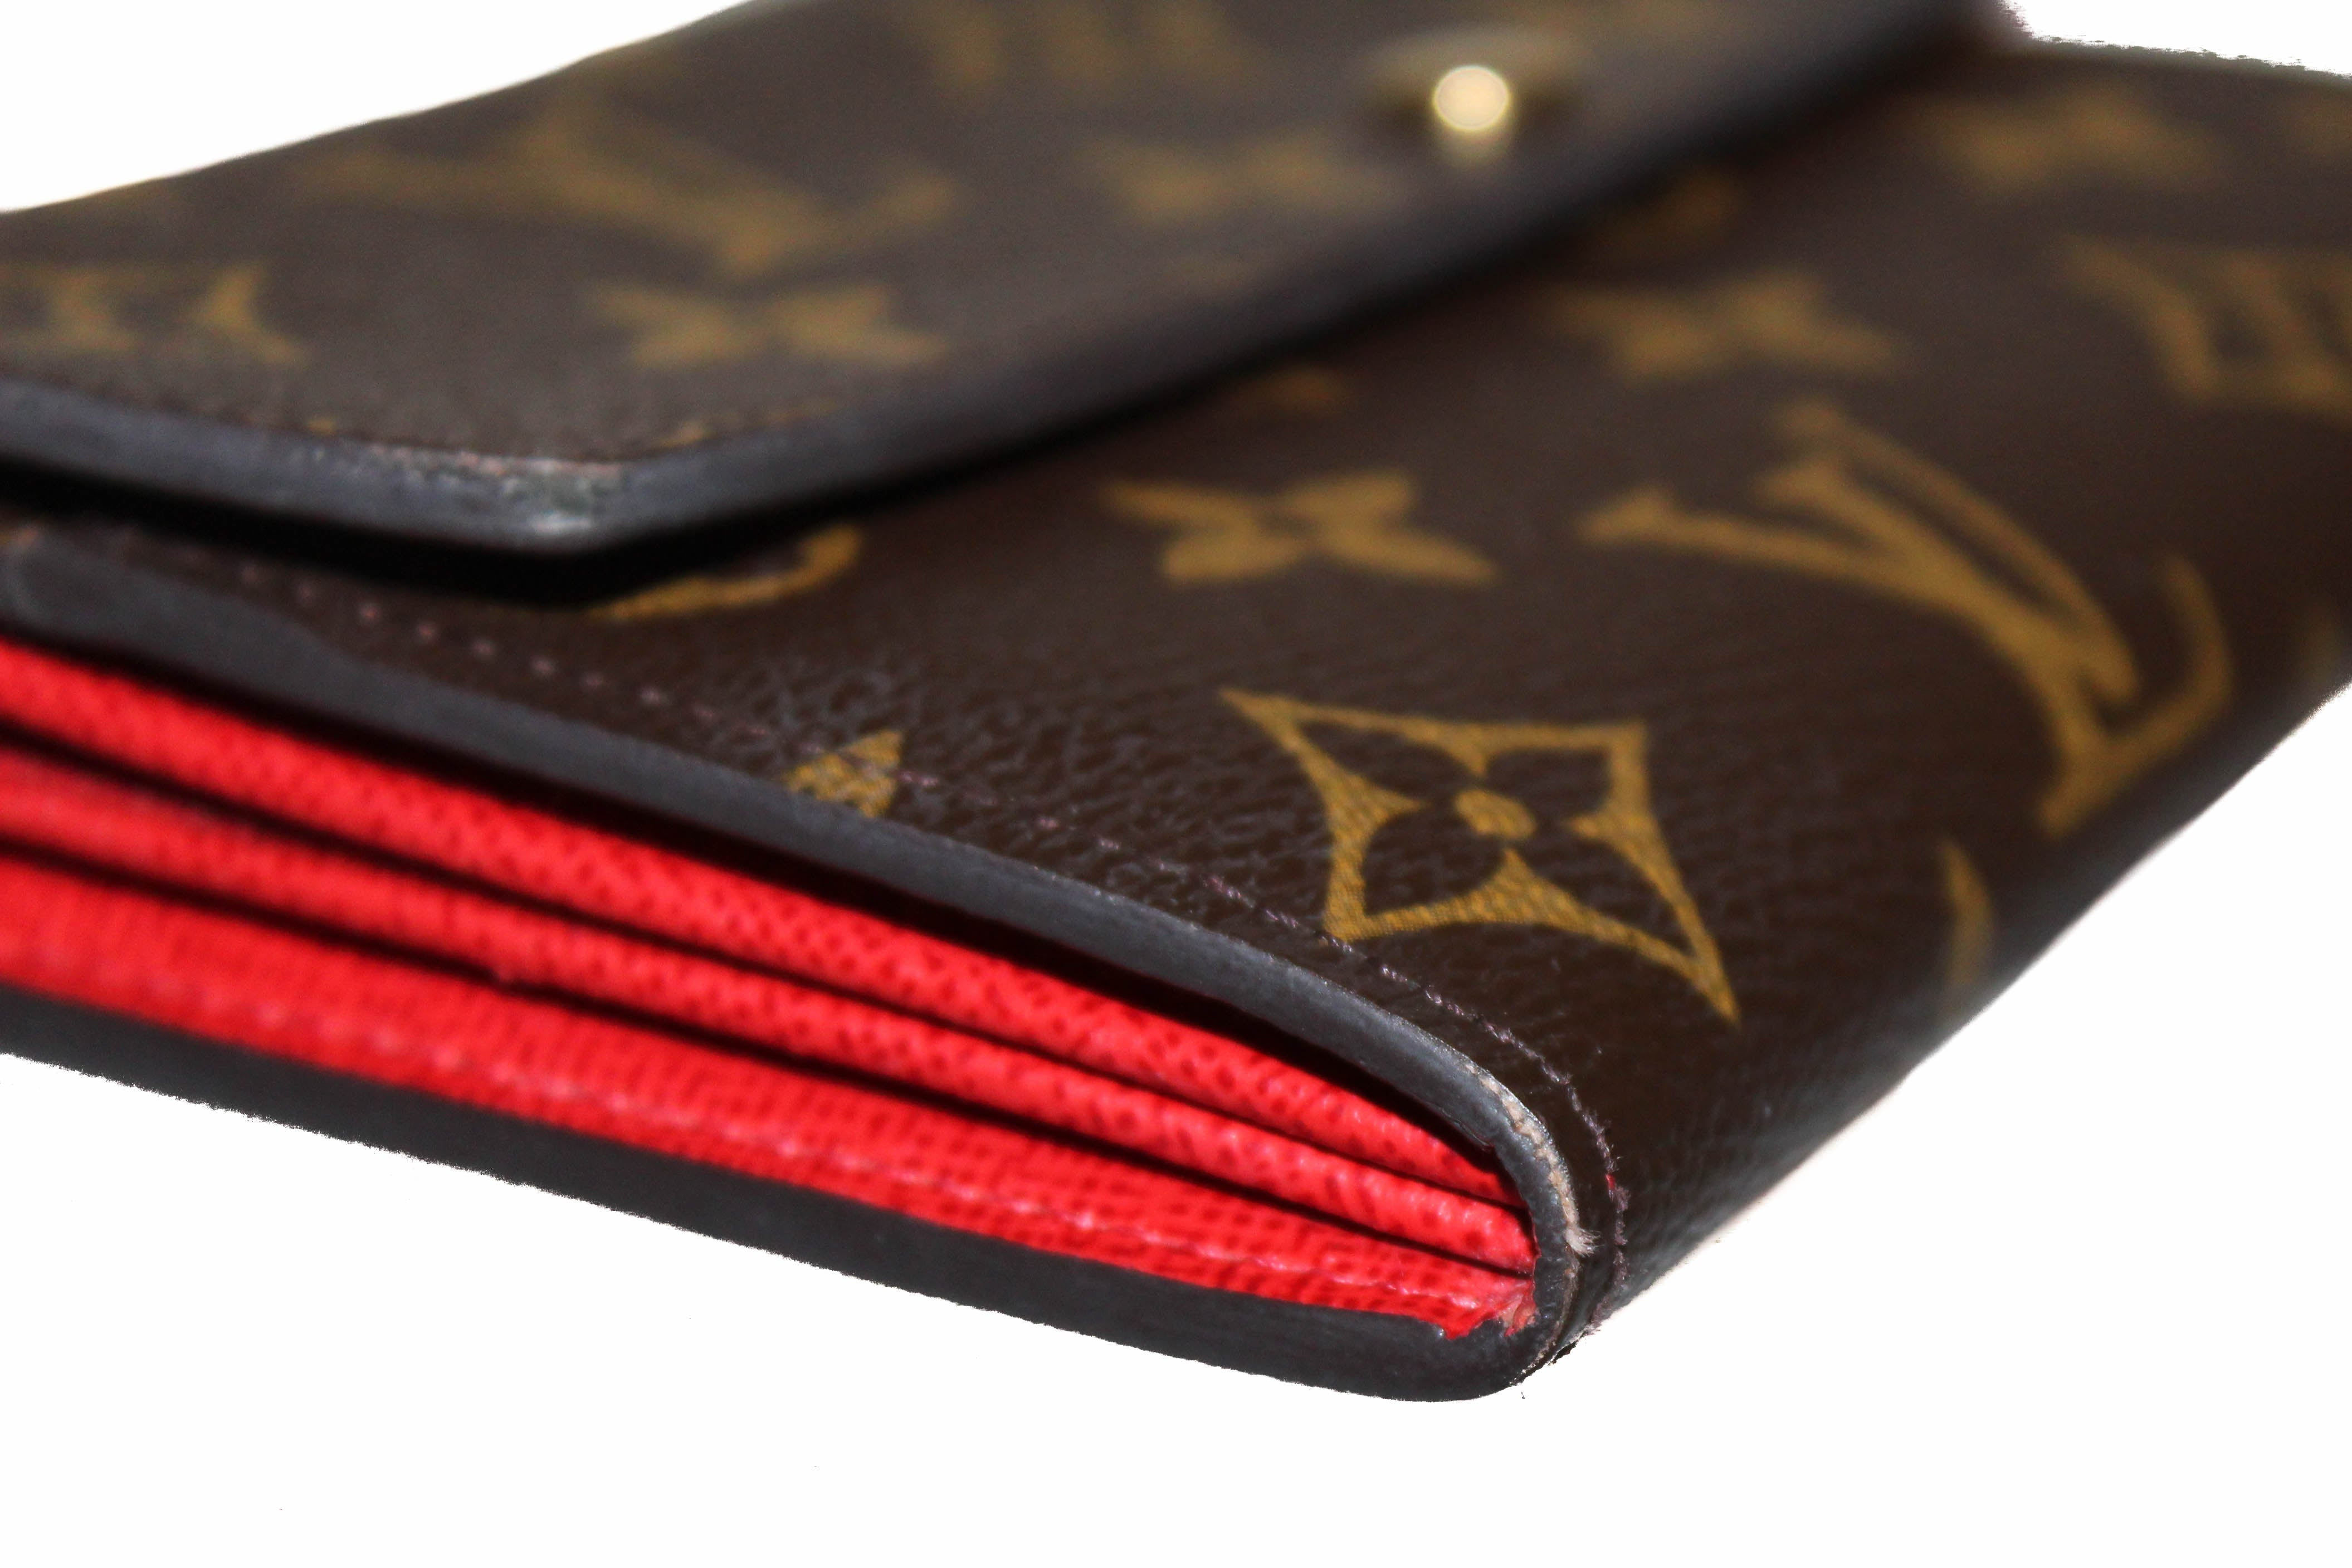 Authentic Louis Vuitton Limited Edition Monogram Groom Sarah Wallet